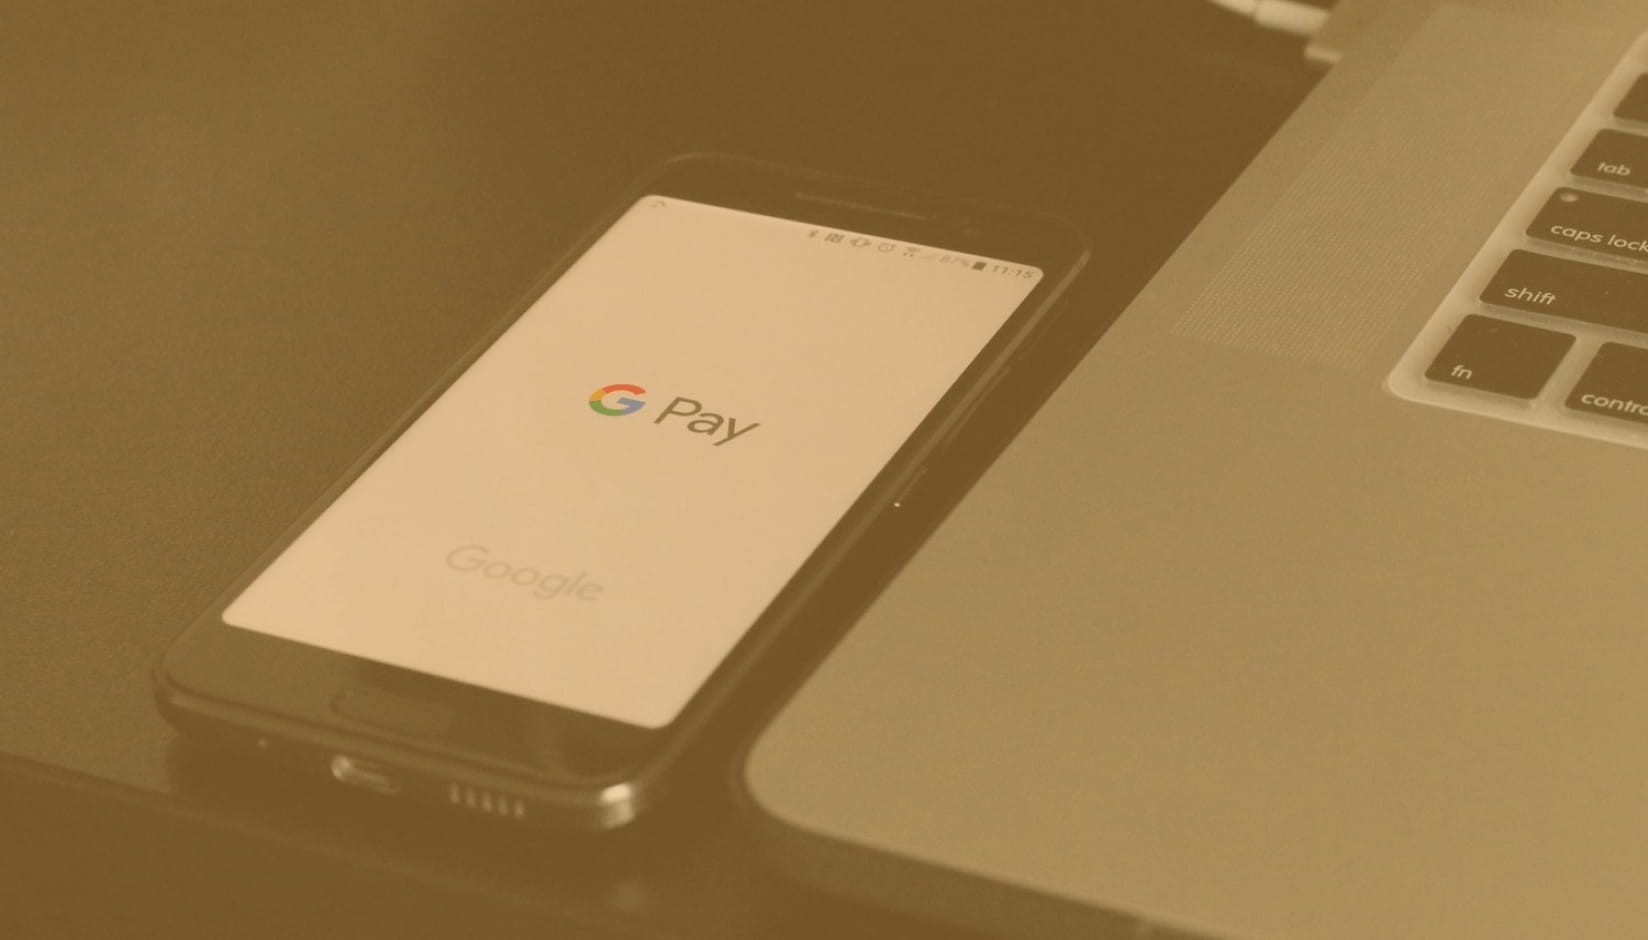 Google pay logo on the phone